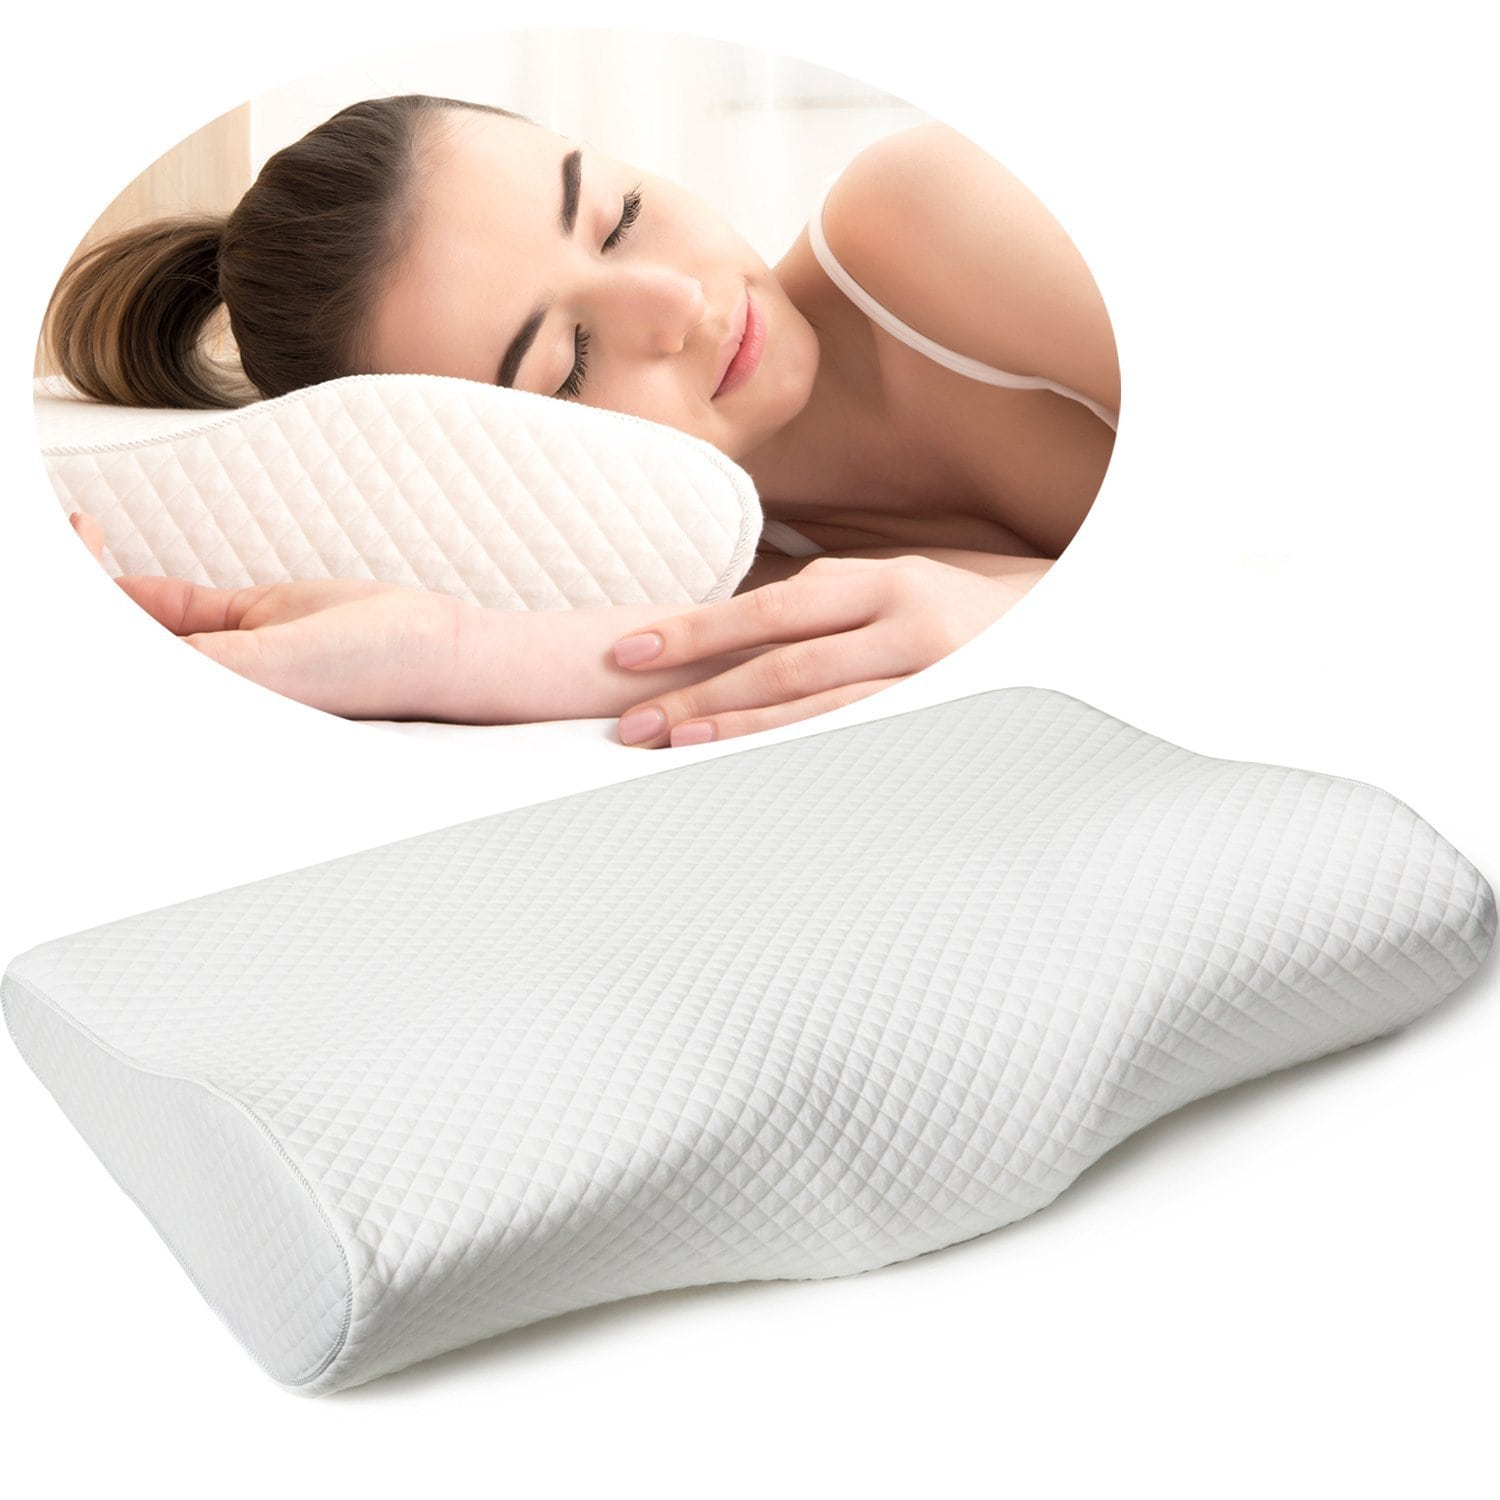 EPABO Contour Memory Foam Pillow Review by Snoremagazine